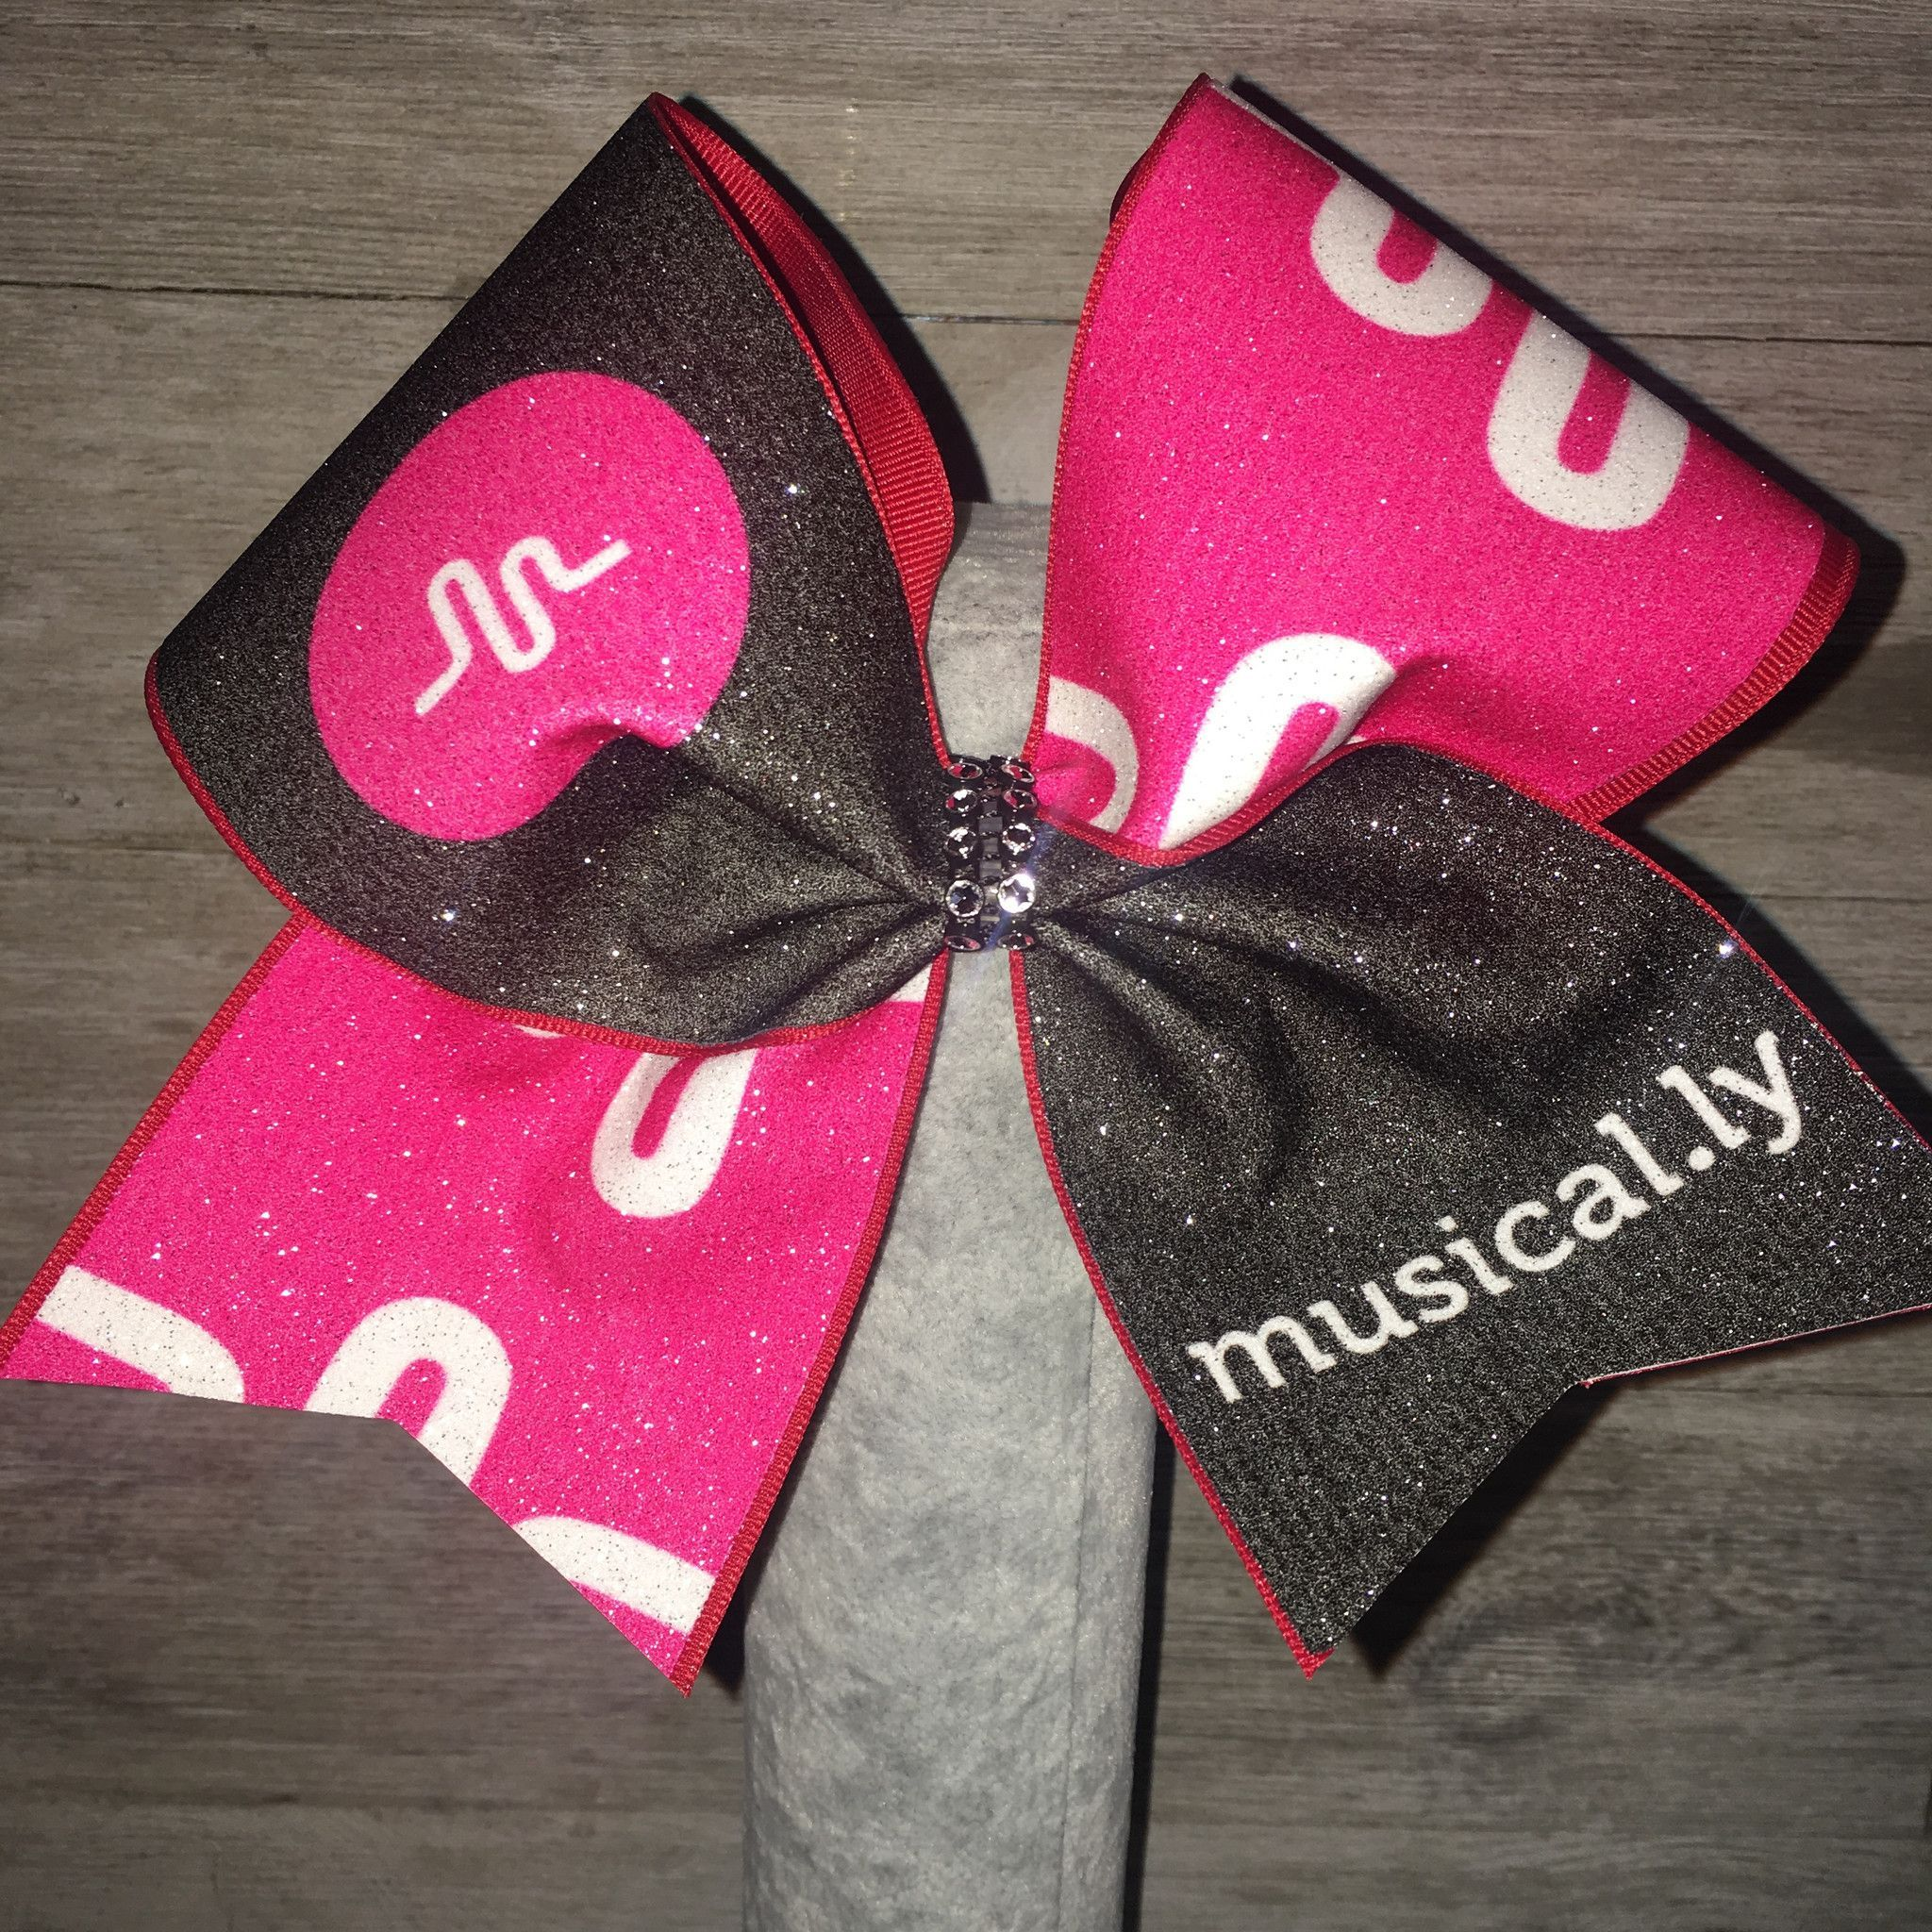 Musical.ly Cute cheer bows, Glitter cheer bow, Jojo siwa